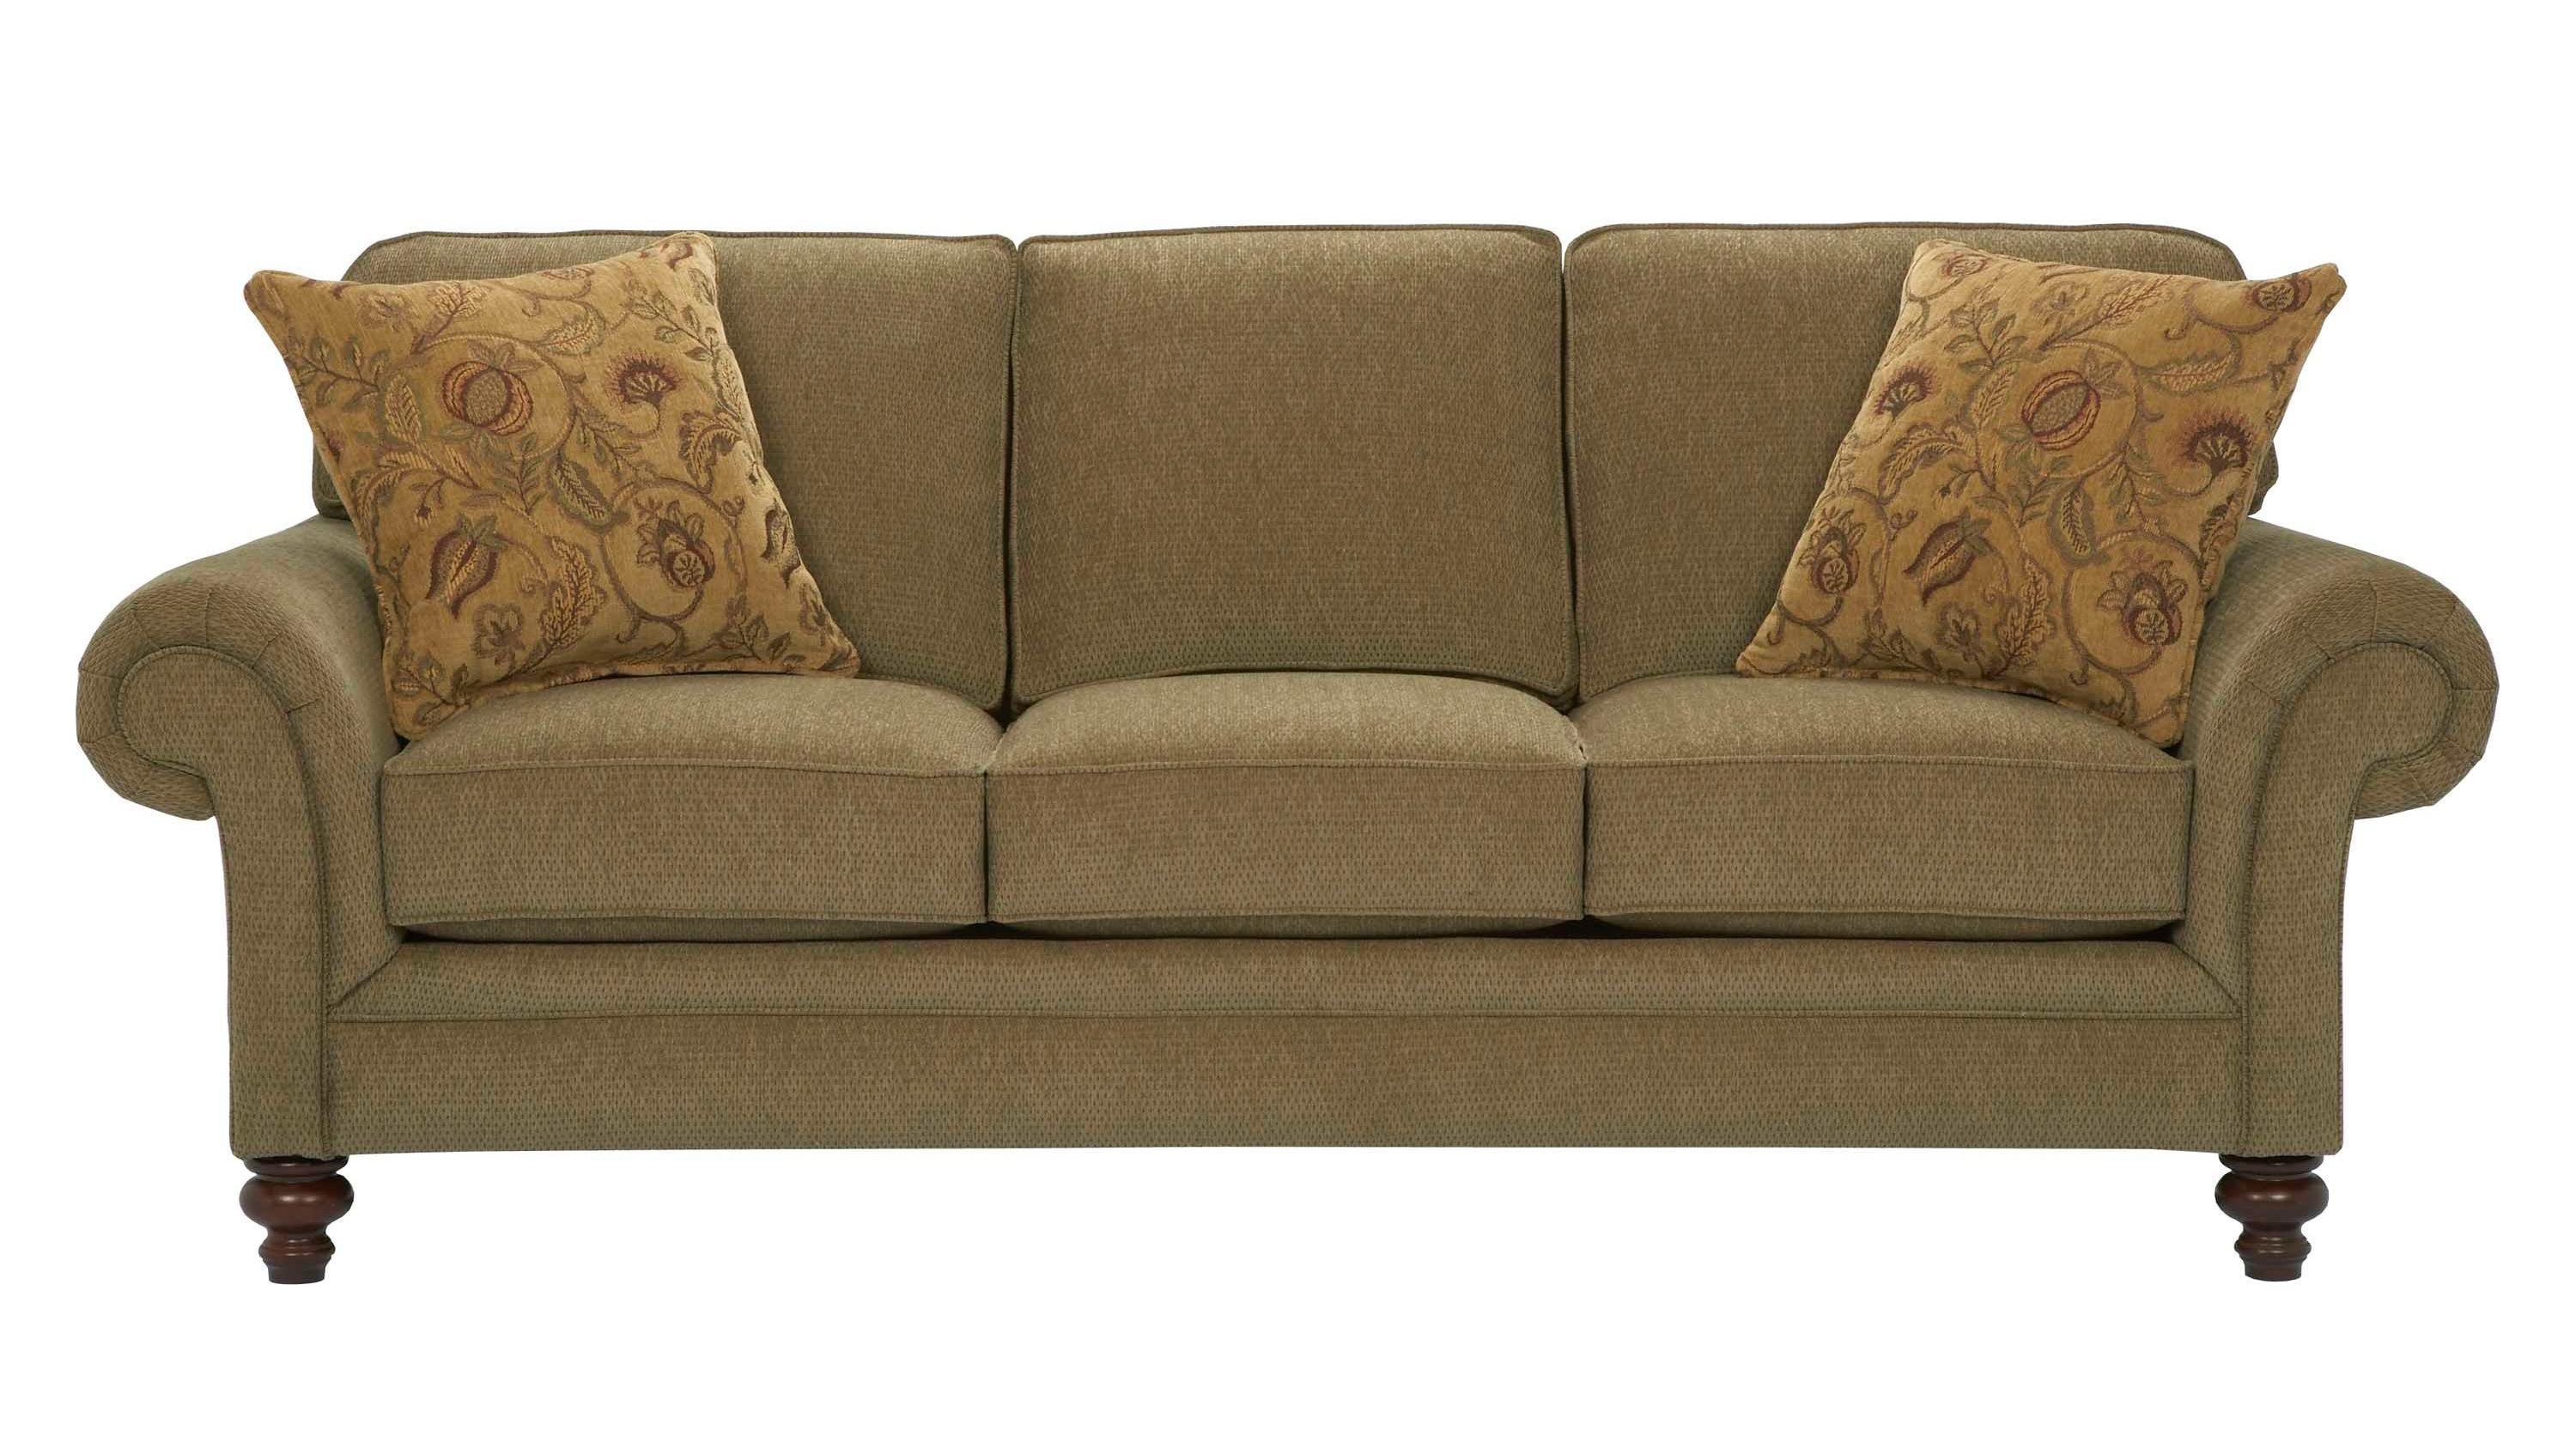 Featured Image of Broyhill Sofas